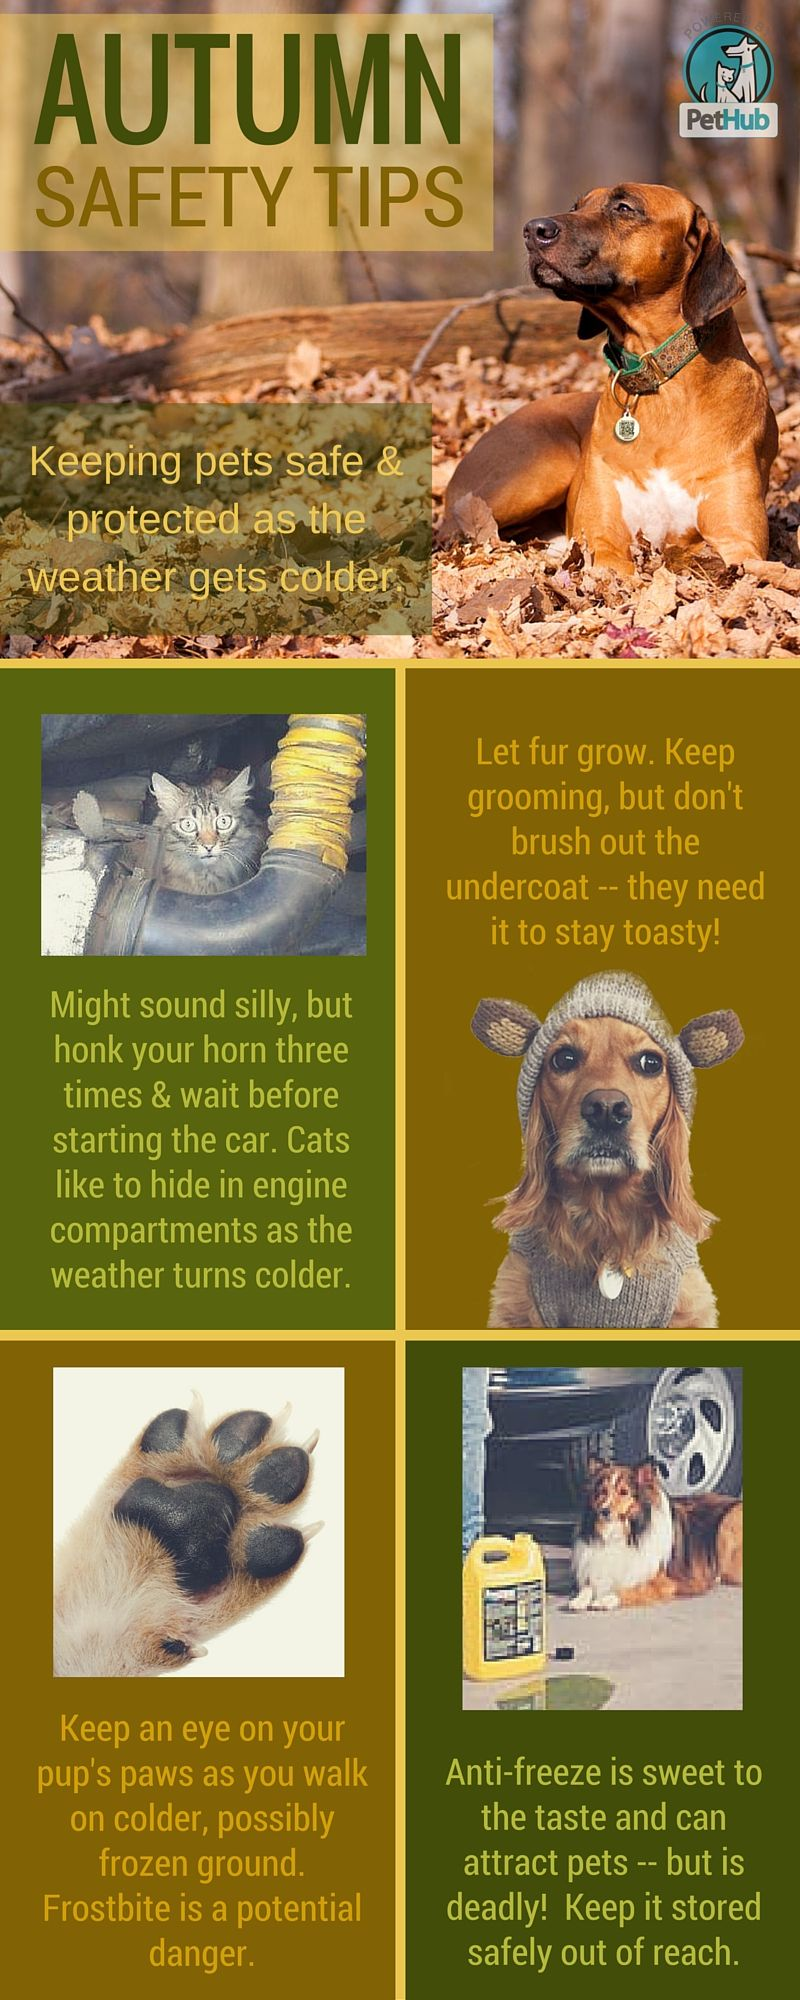 4 Critical Pet Safety Things To Remember As Summer Turns To Autumn